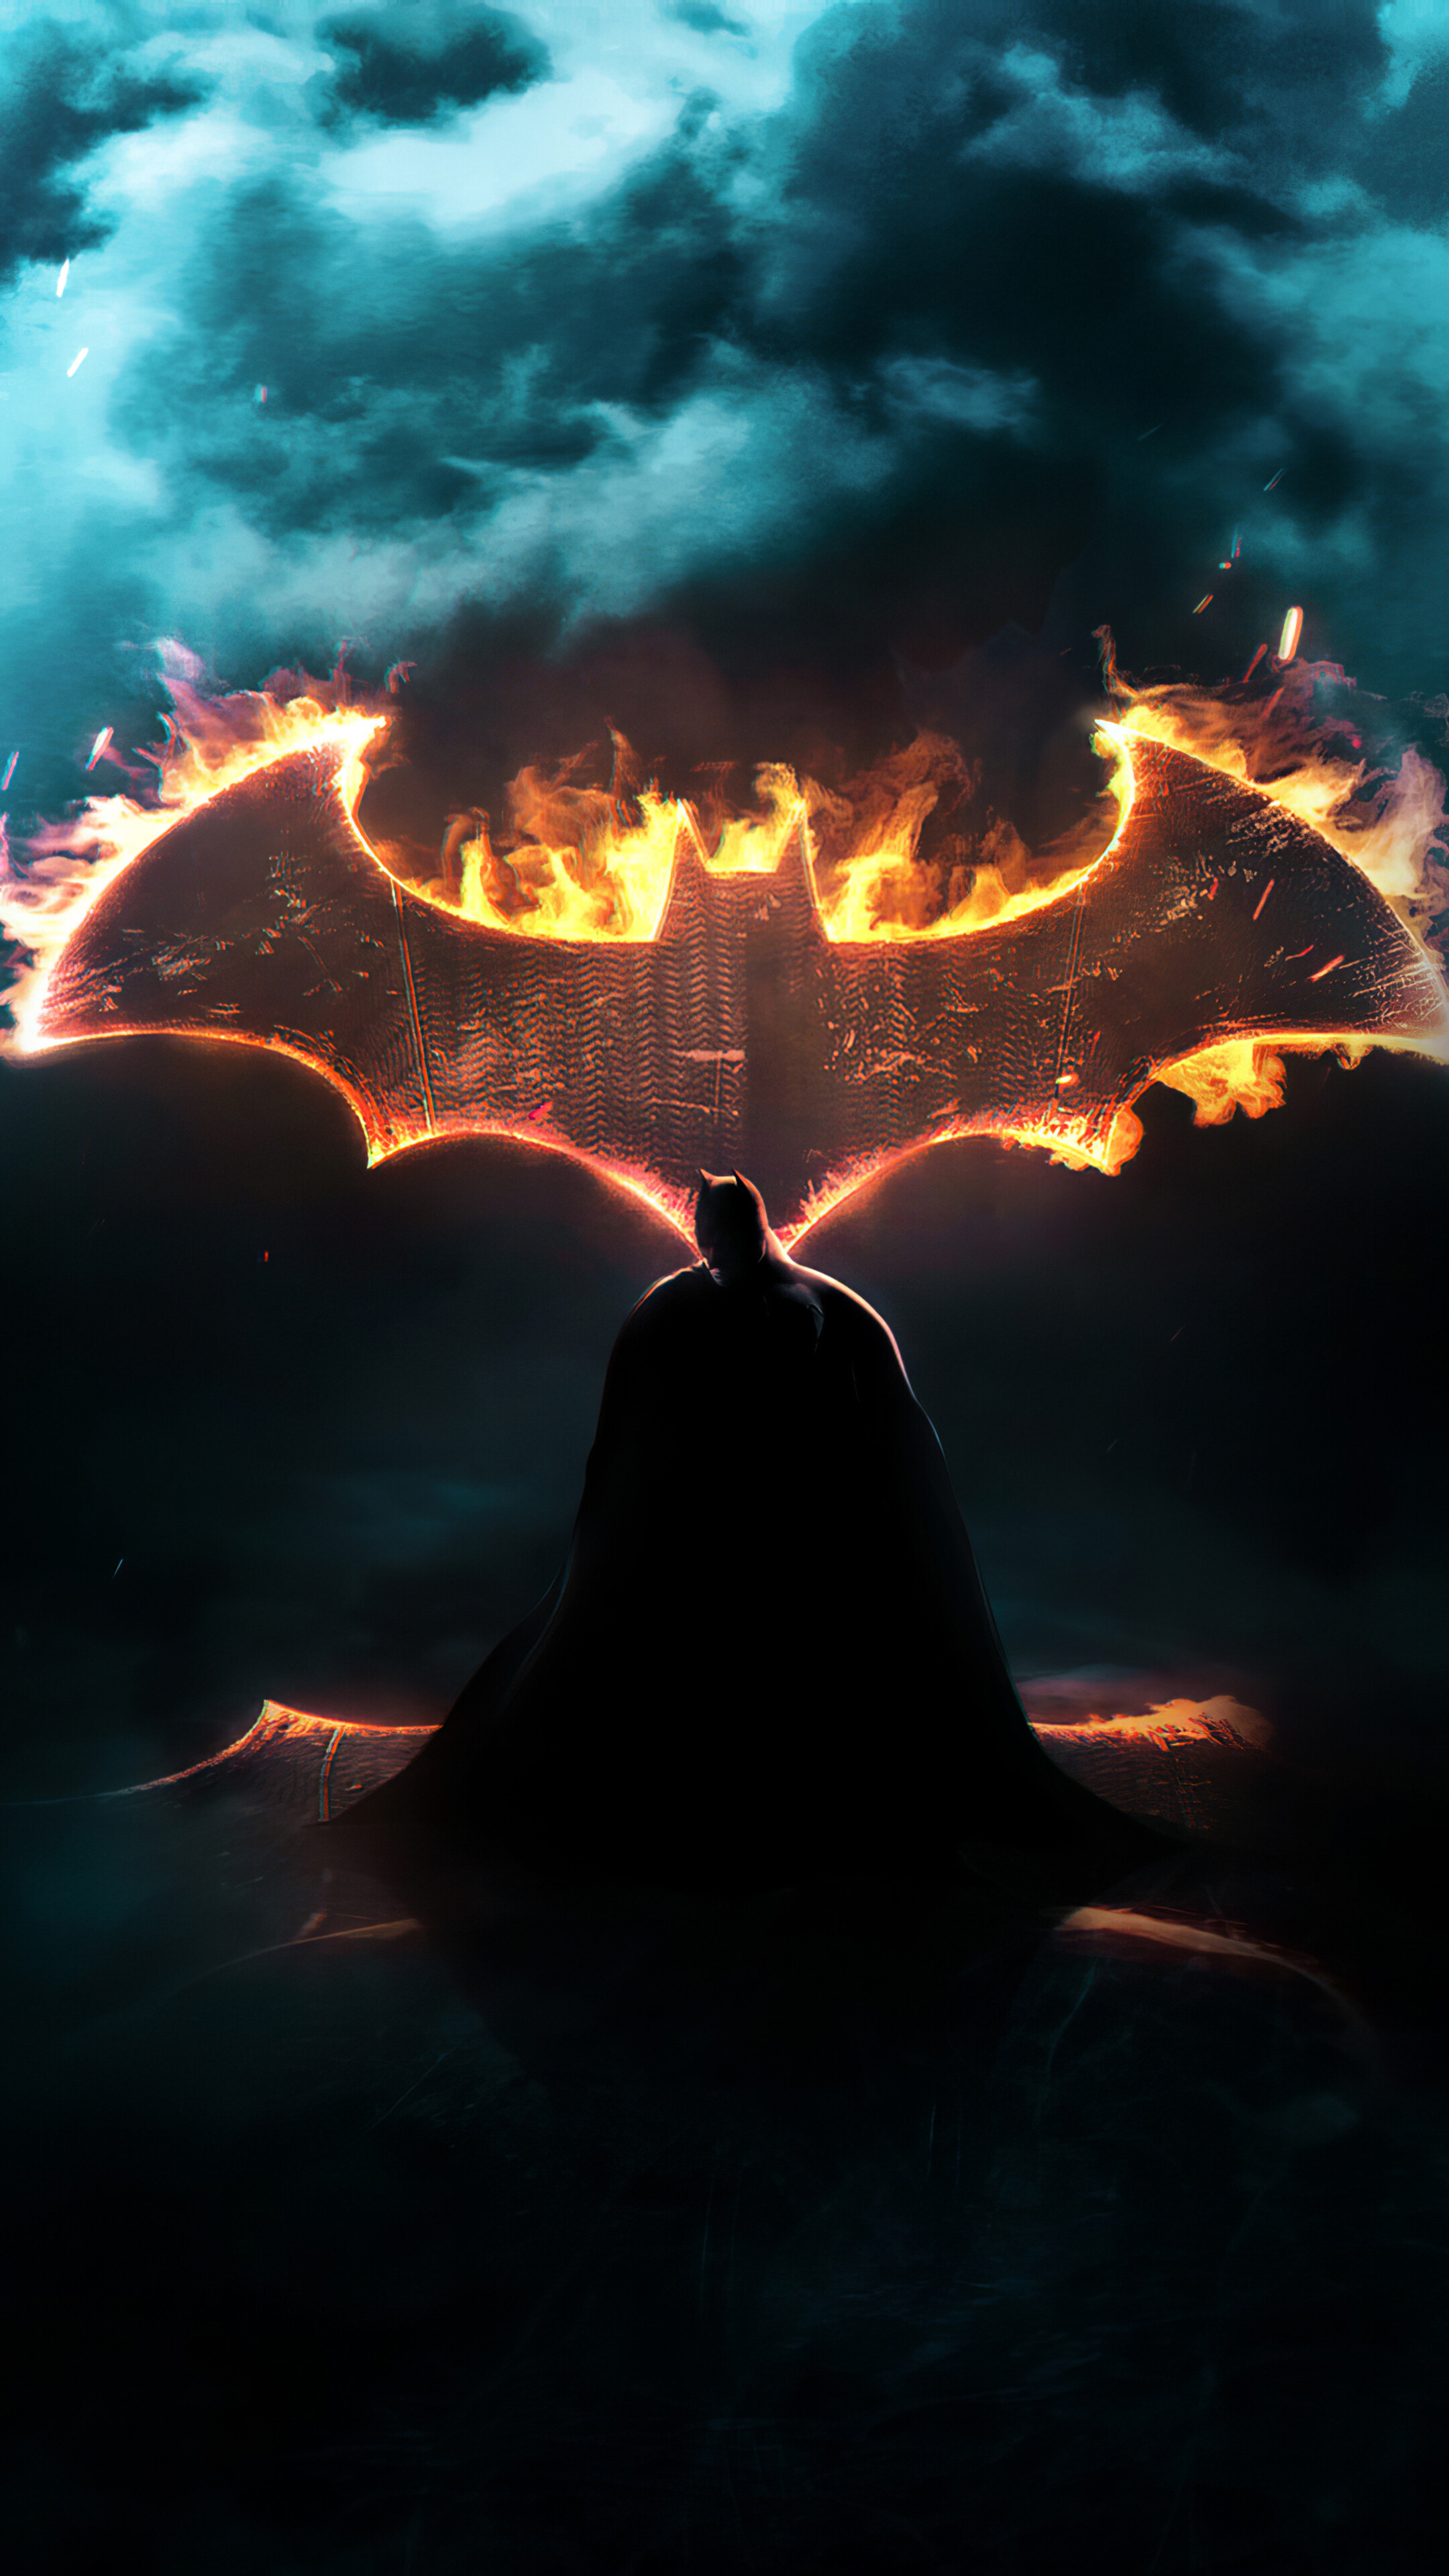 Ultra Hd Batman Hd Wallpapers For Mobile - colouring mermaid